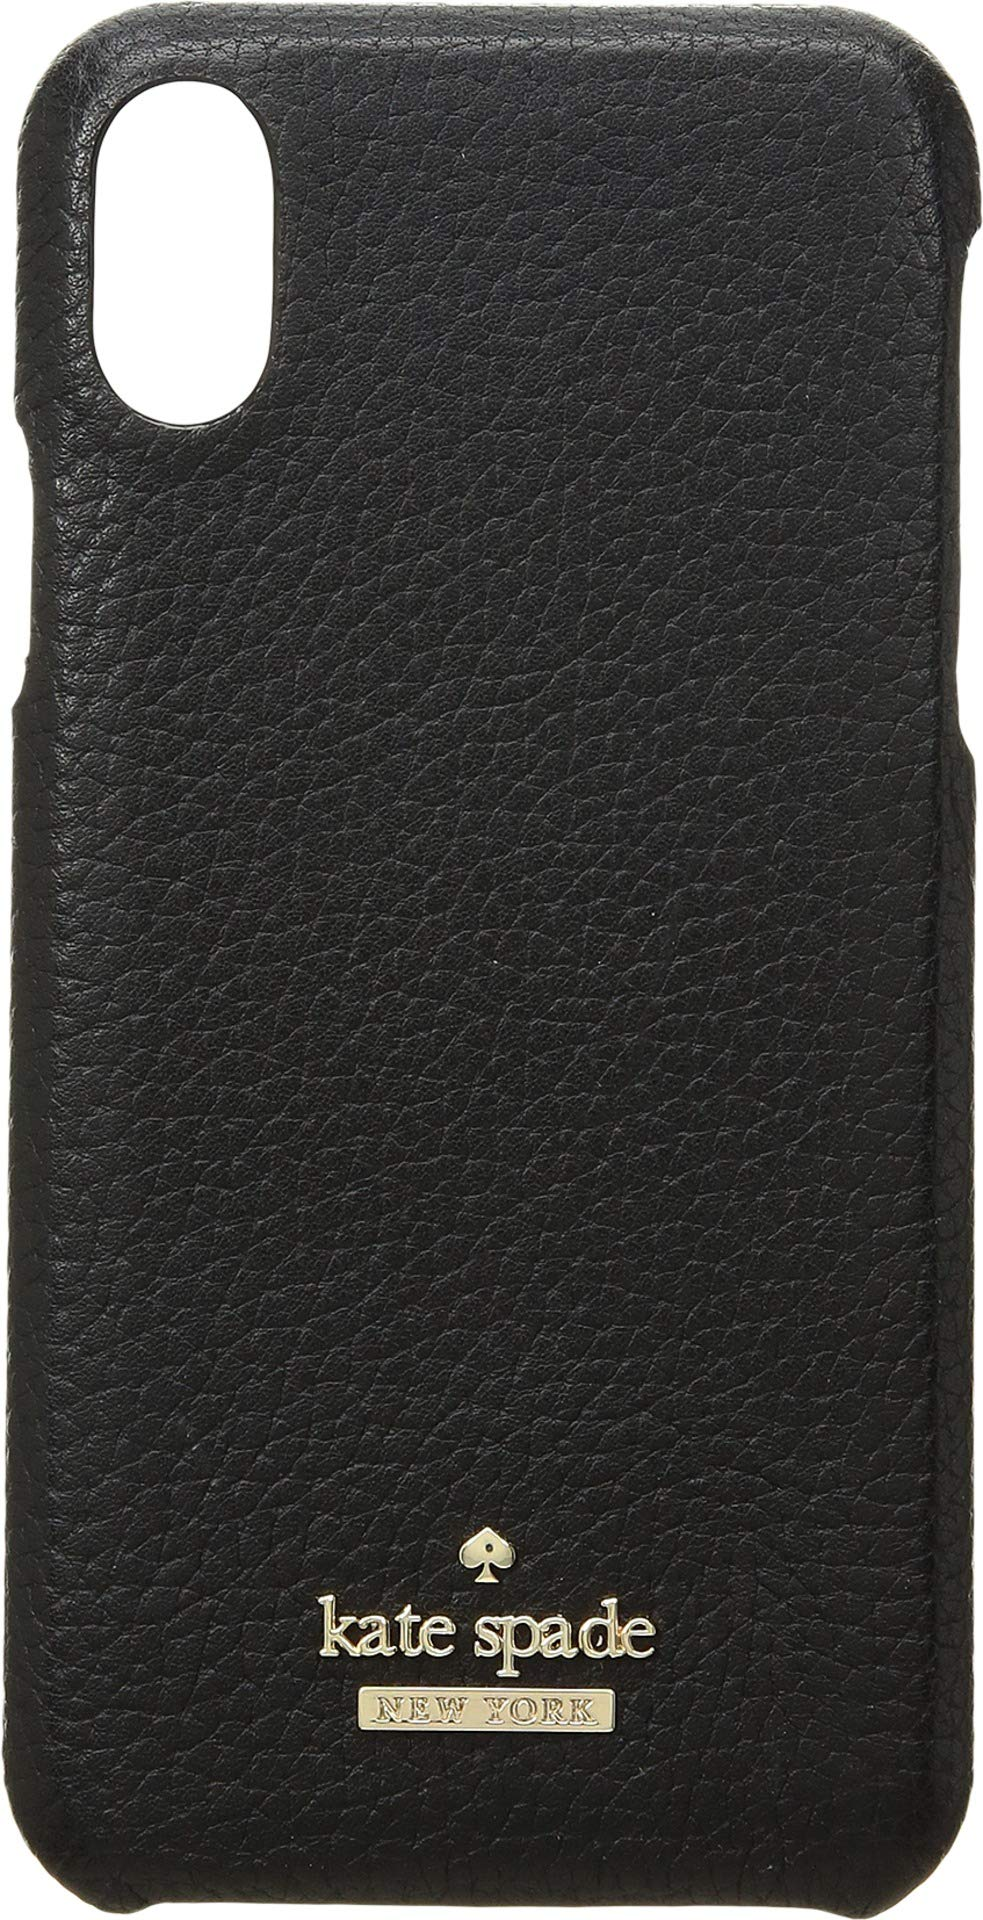 Kate Spade New York Women's Pebbled Snap Case for The iPhone X Black One Size